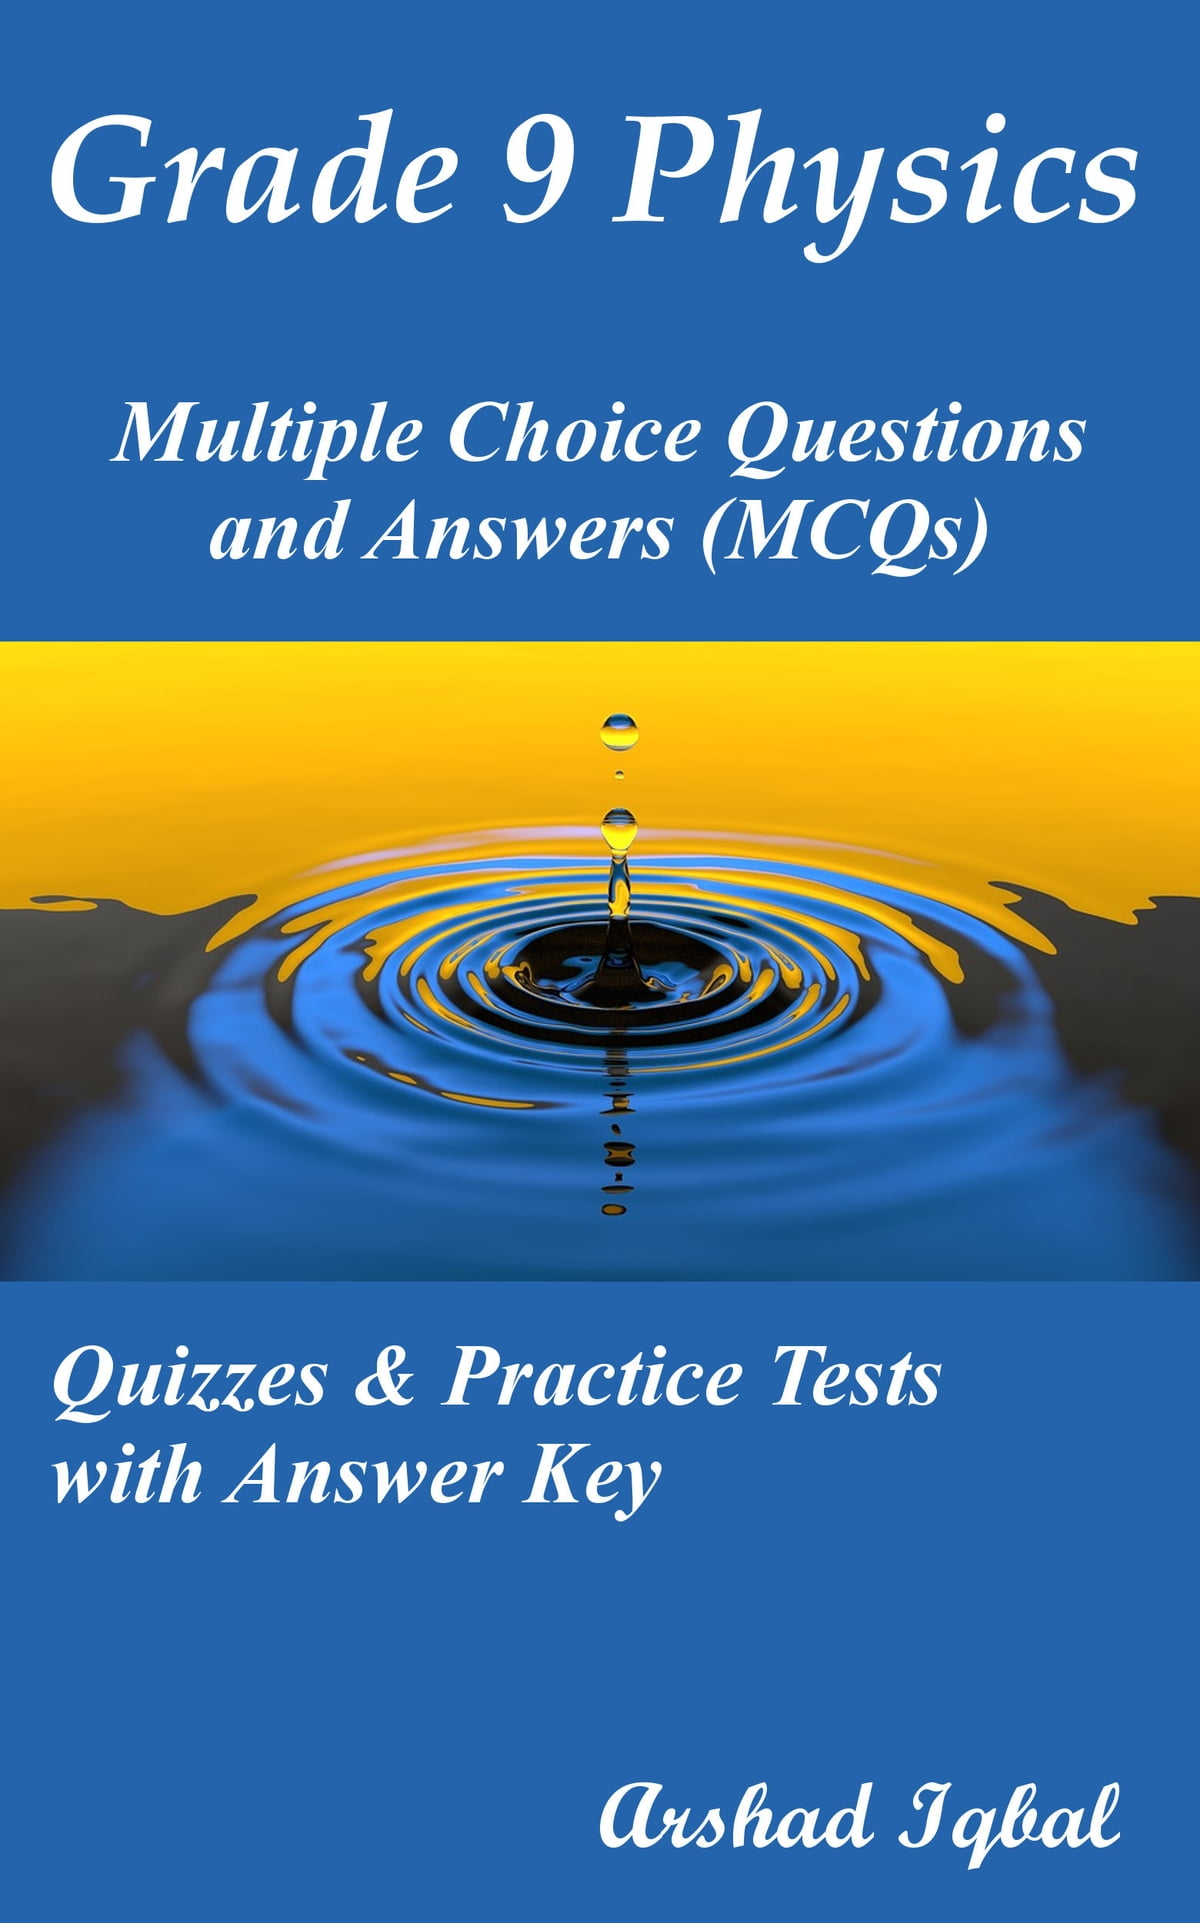 Grade 9 Physics Multiple Choice Questions And Answers MCQs Quizzes Practice Tests With Answer Key Ebook By Arshad Iqbal Rakuten Kobo